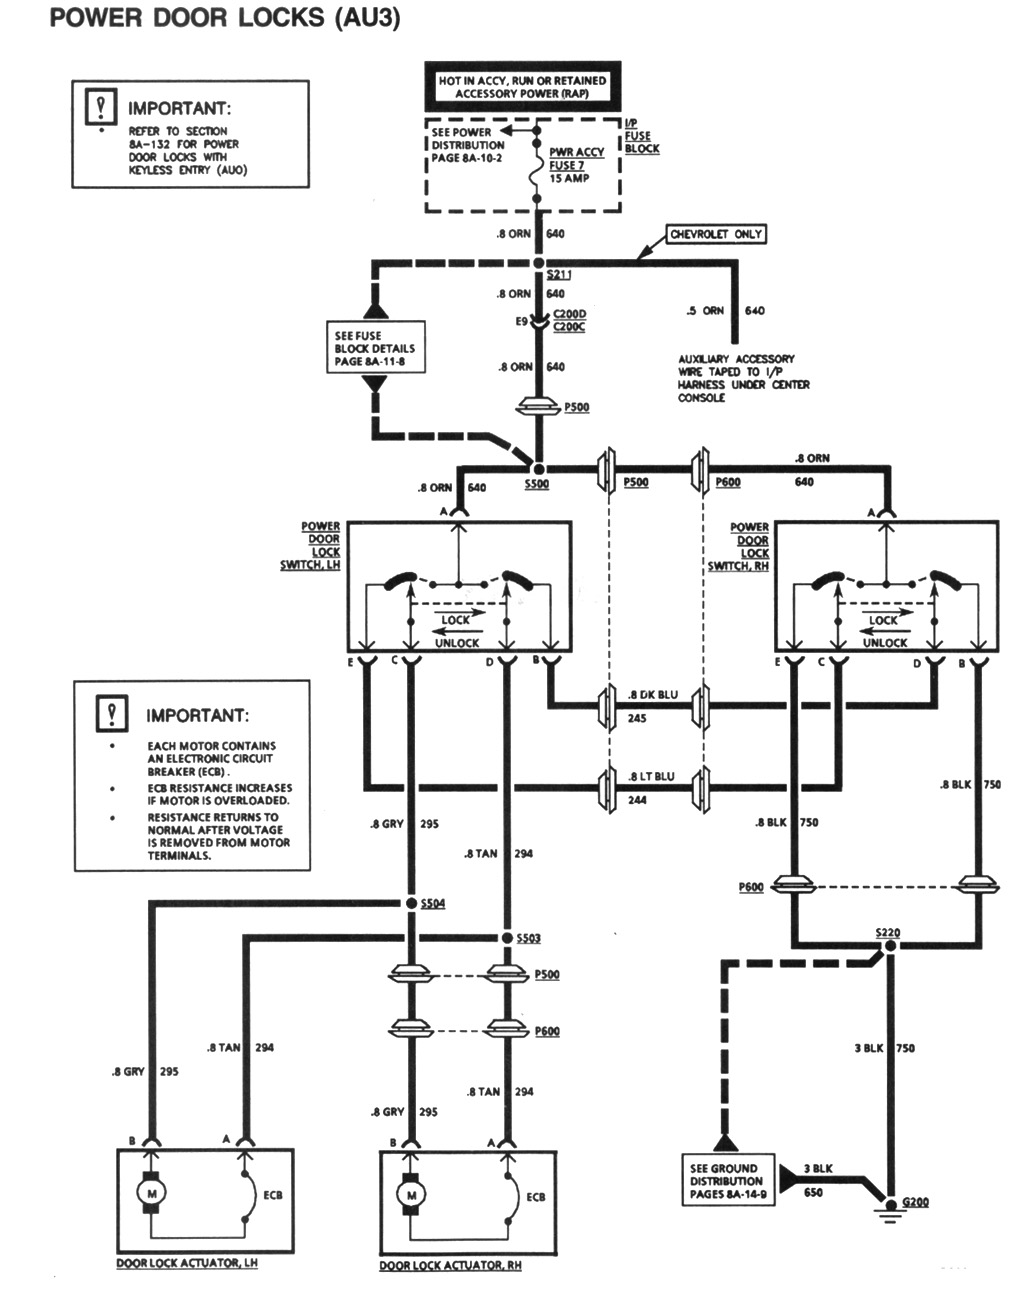 Power Door Lock Schematic Can Someone Please